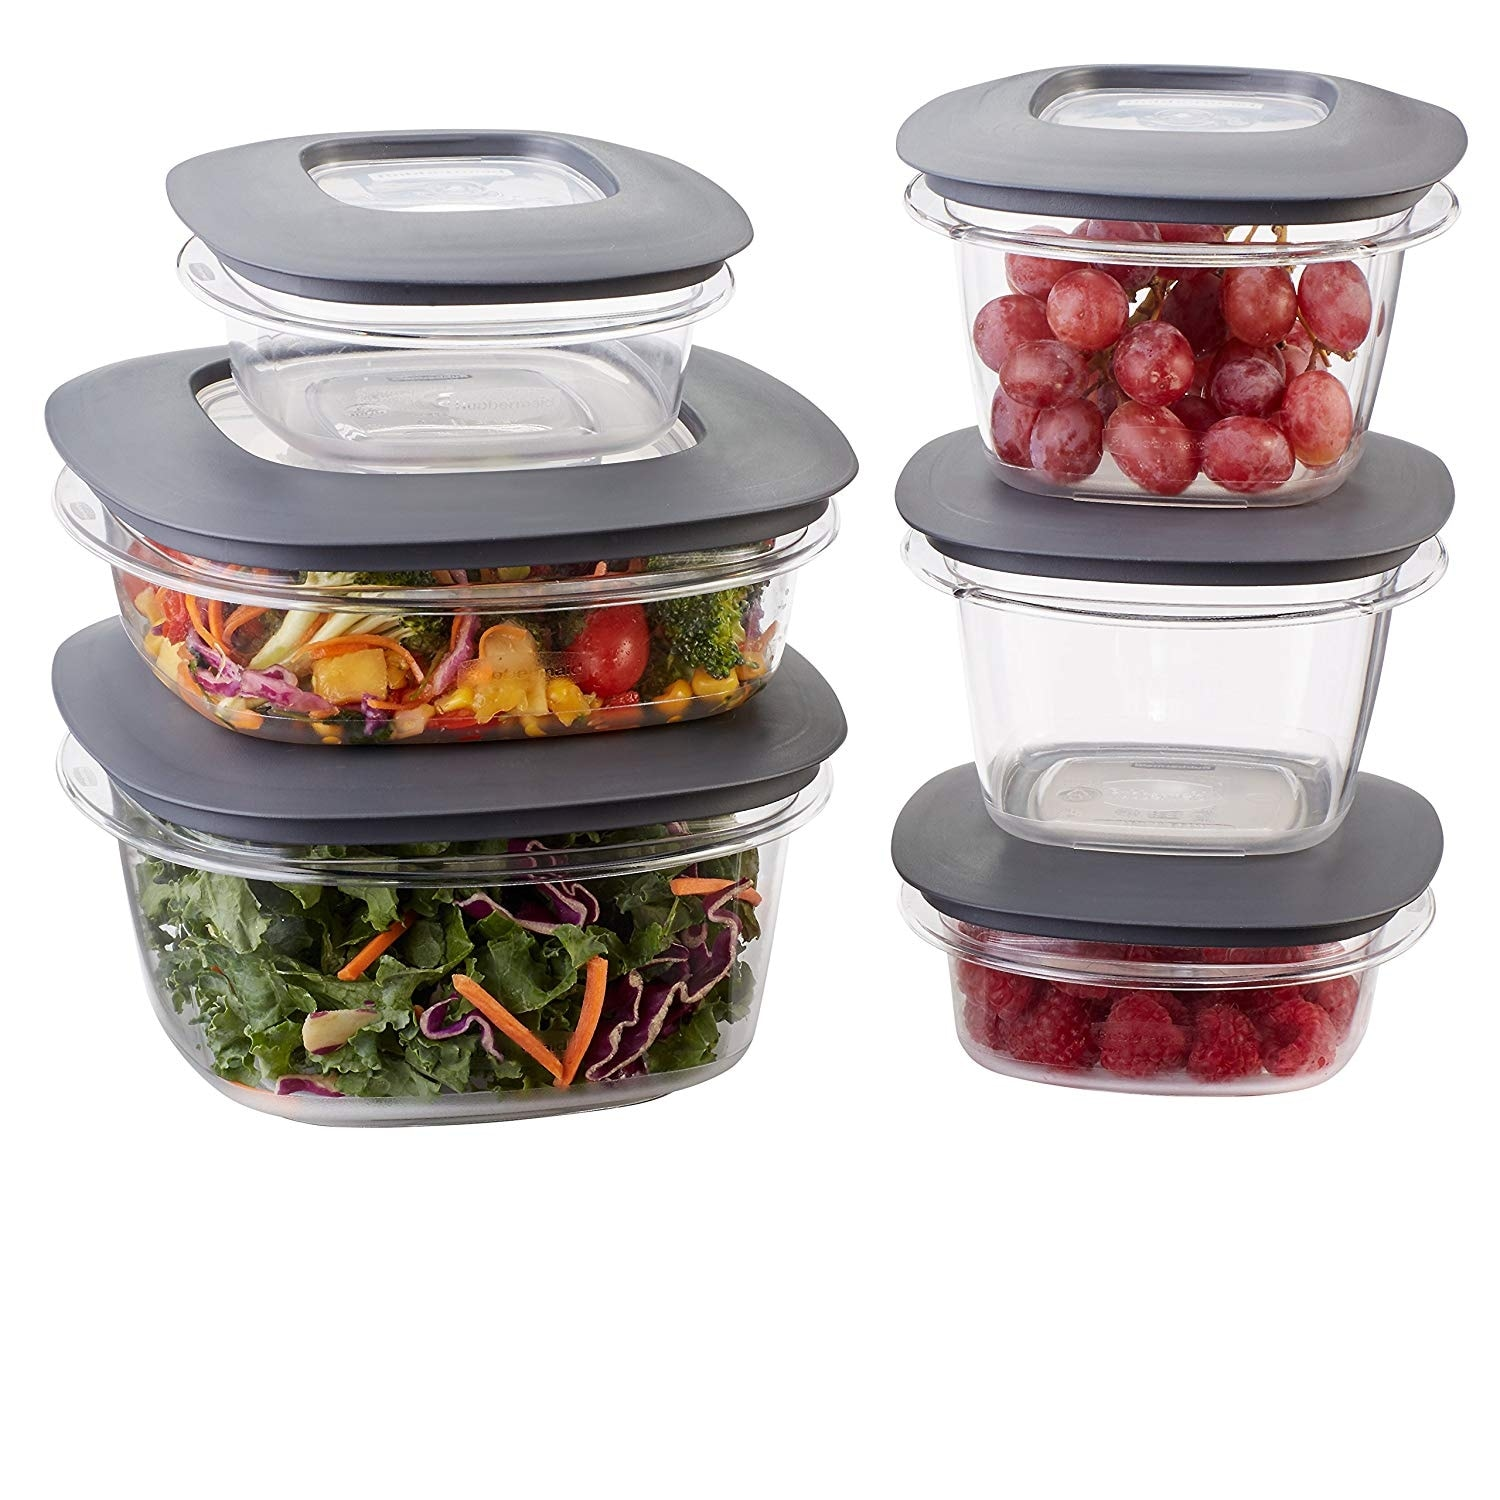 Gray Rubbermaid Premier Easy Find Lids Food Storage Containers 5 Cup